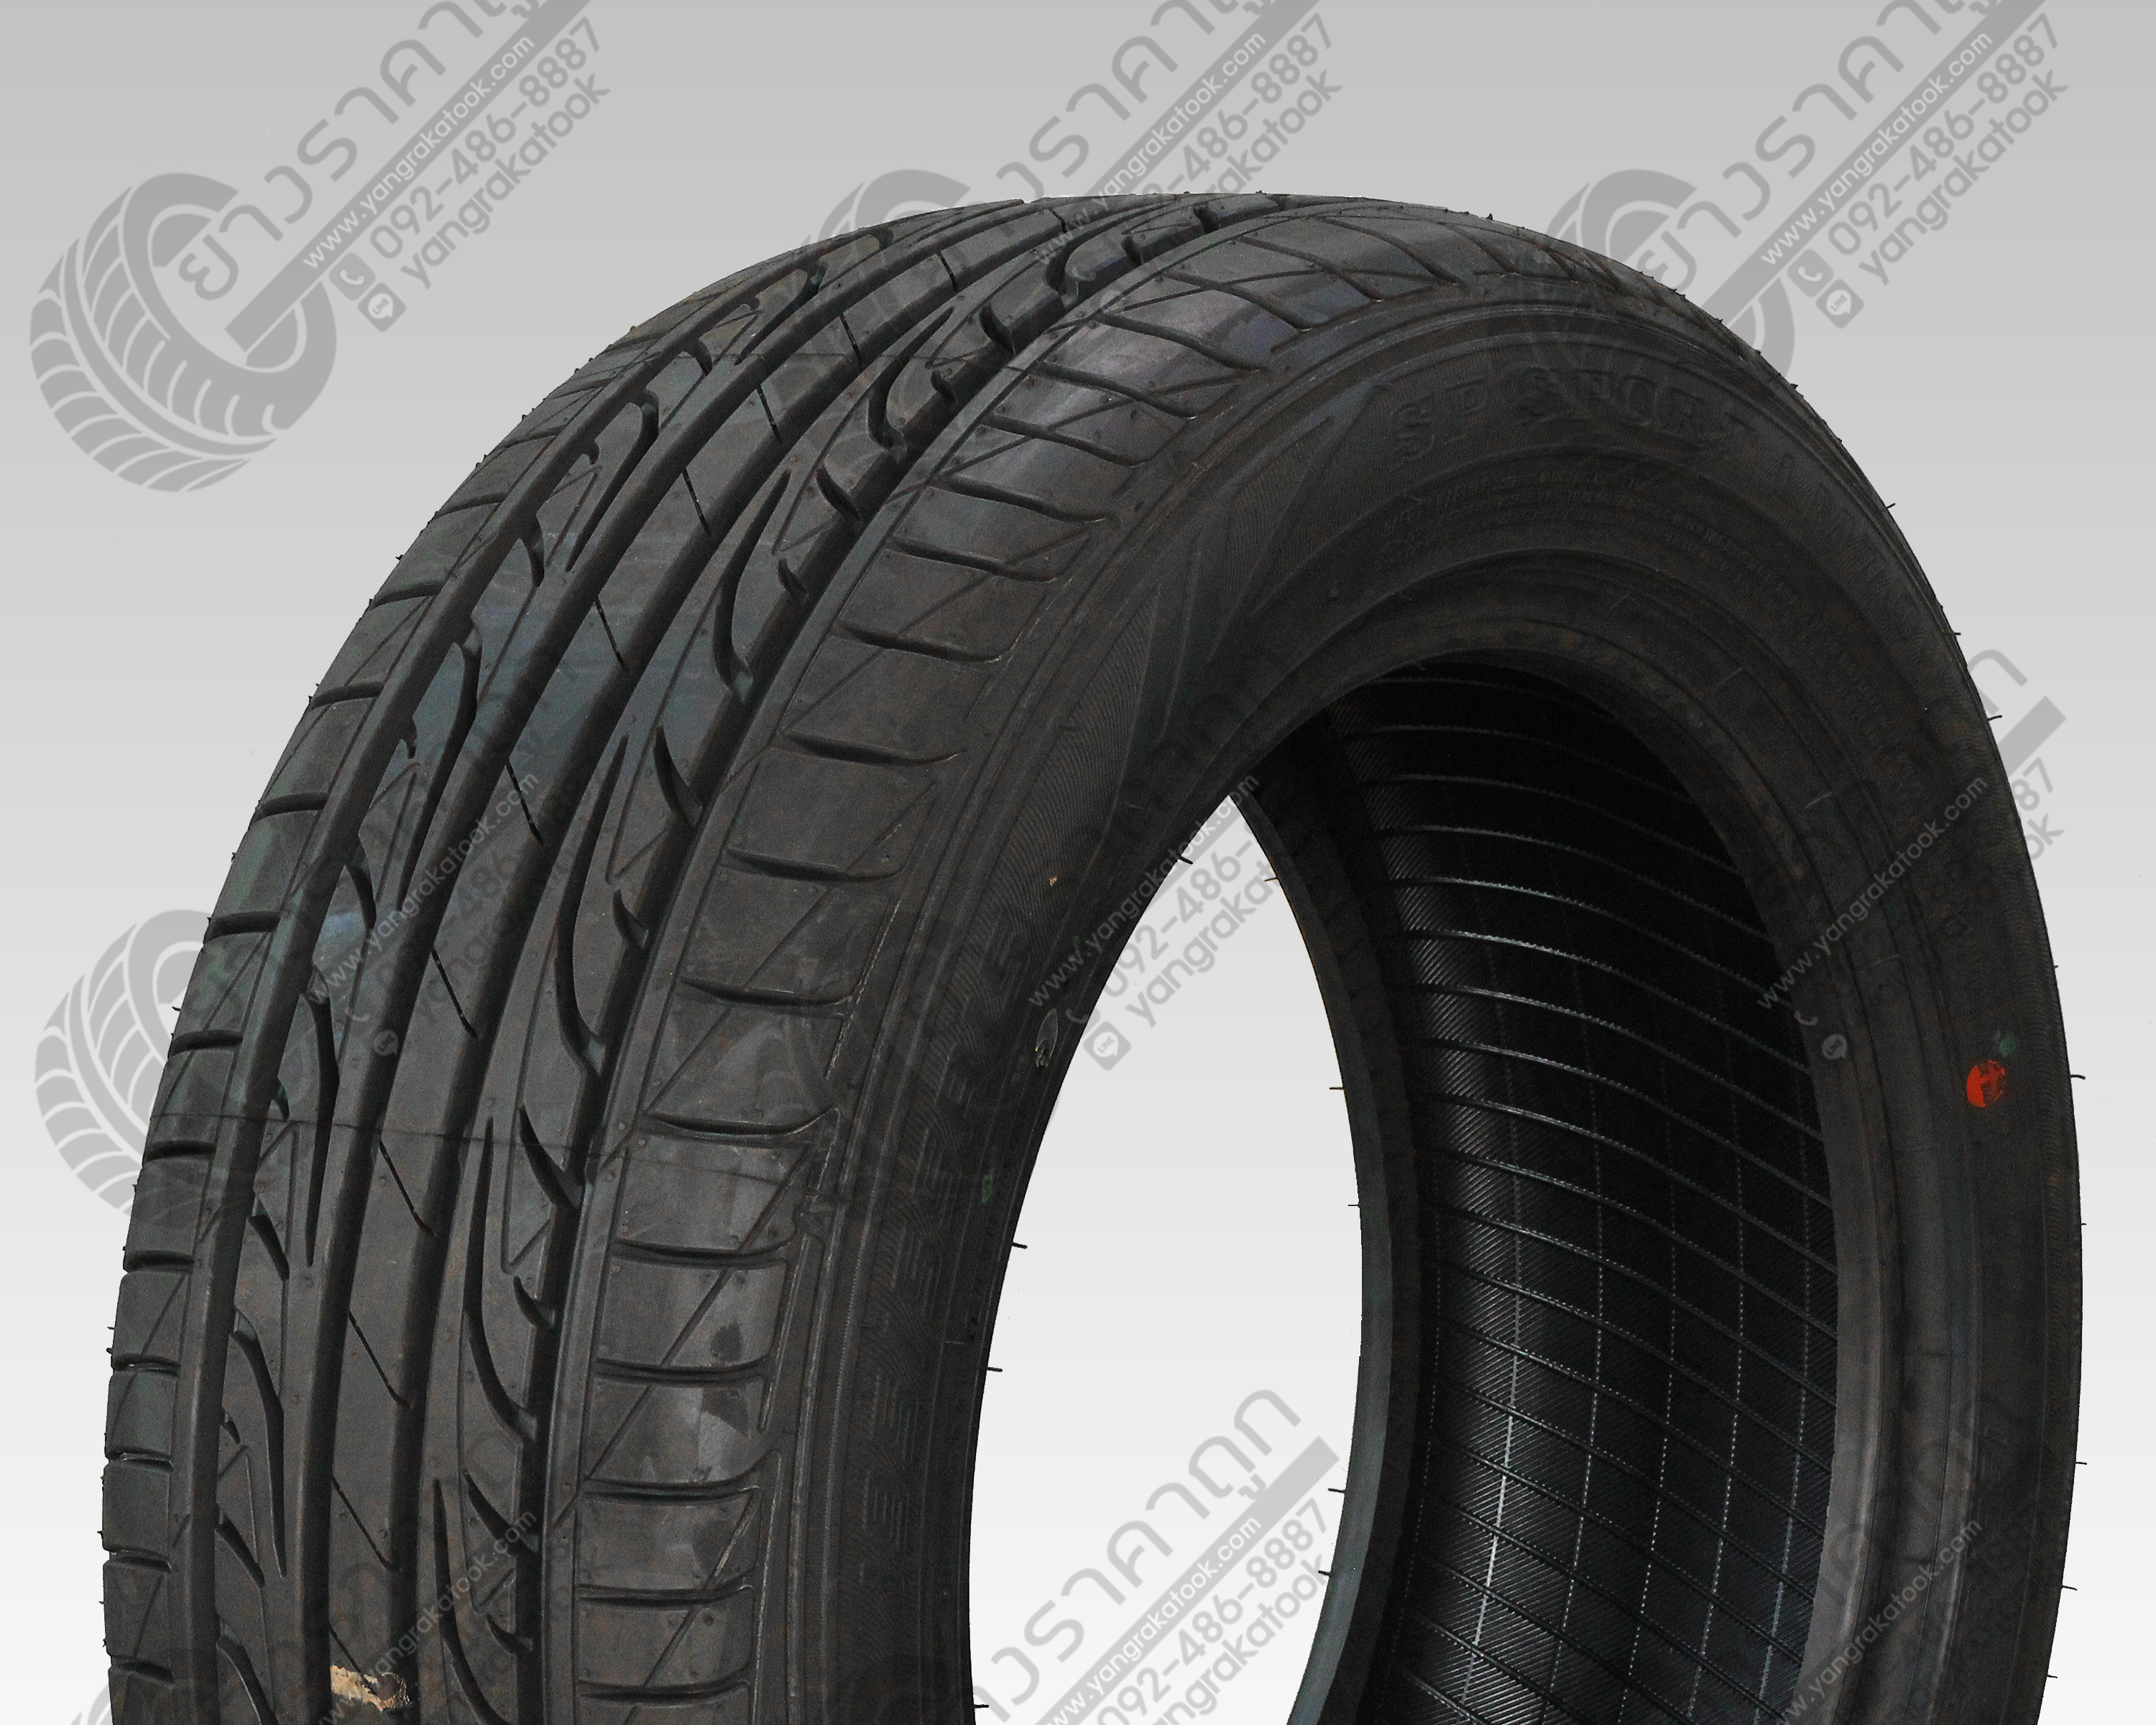 Dunlop LM704 215/50R17 ปี15